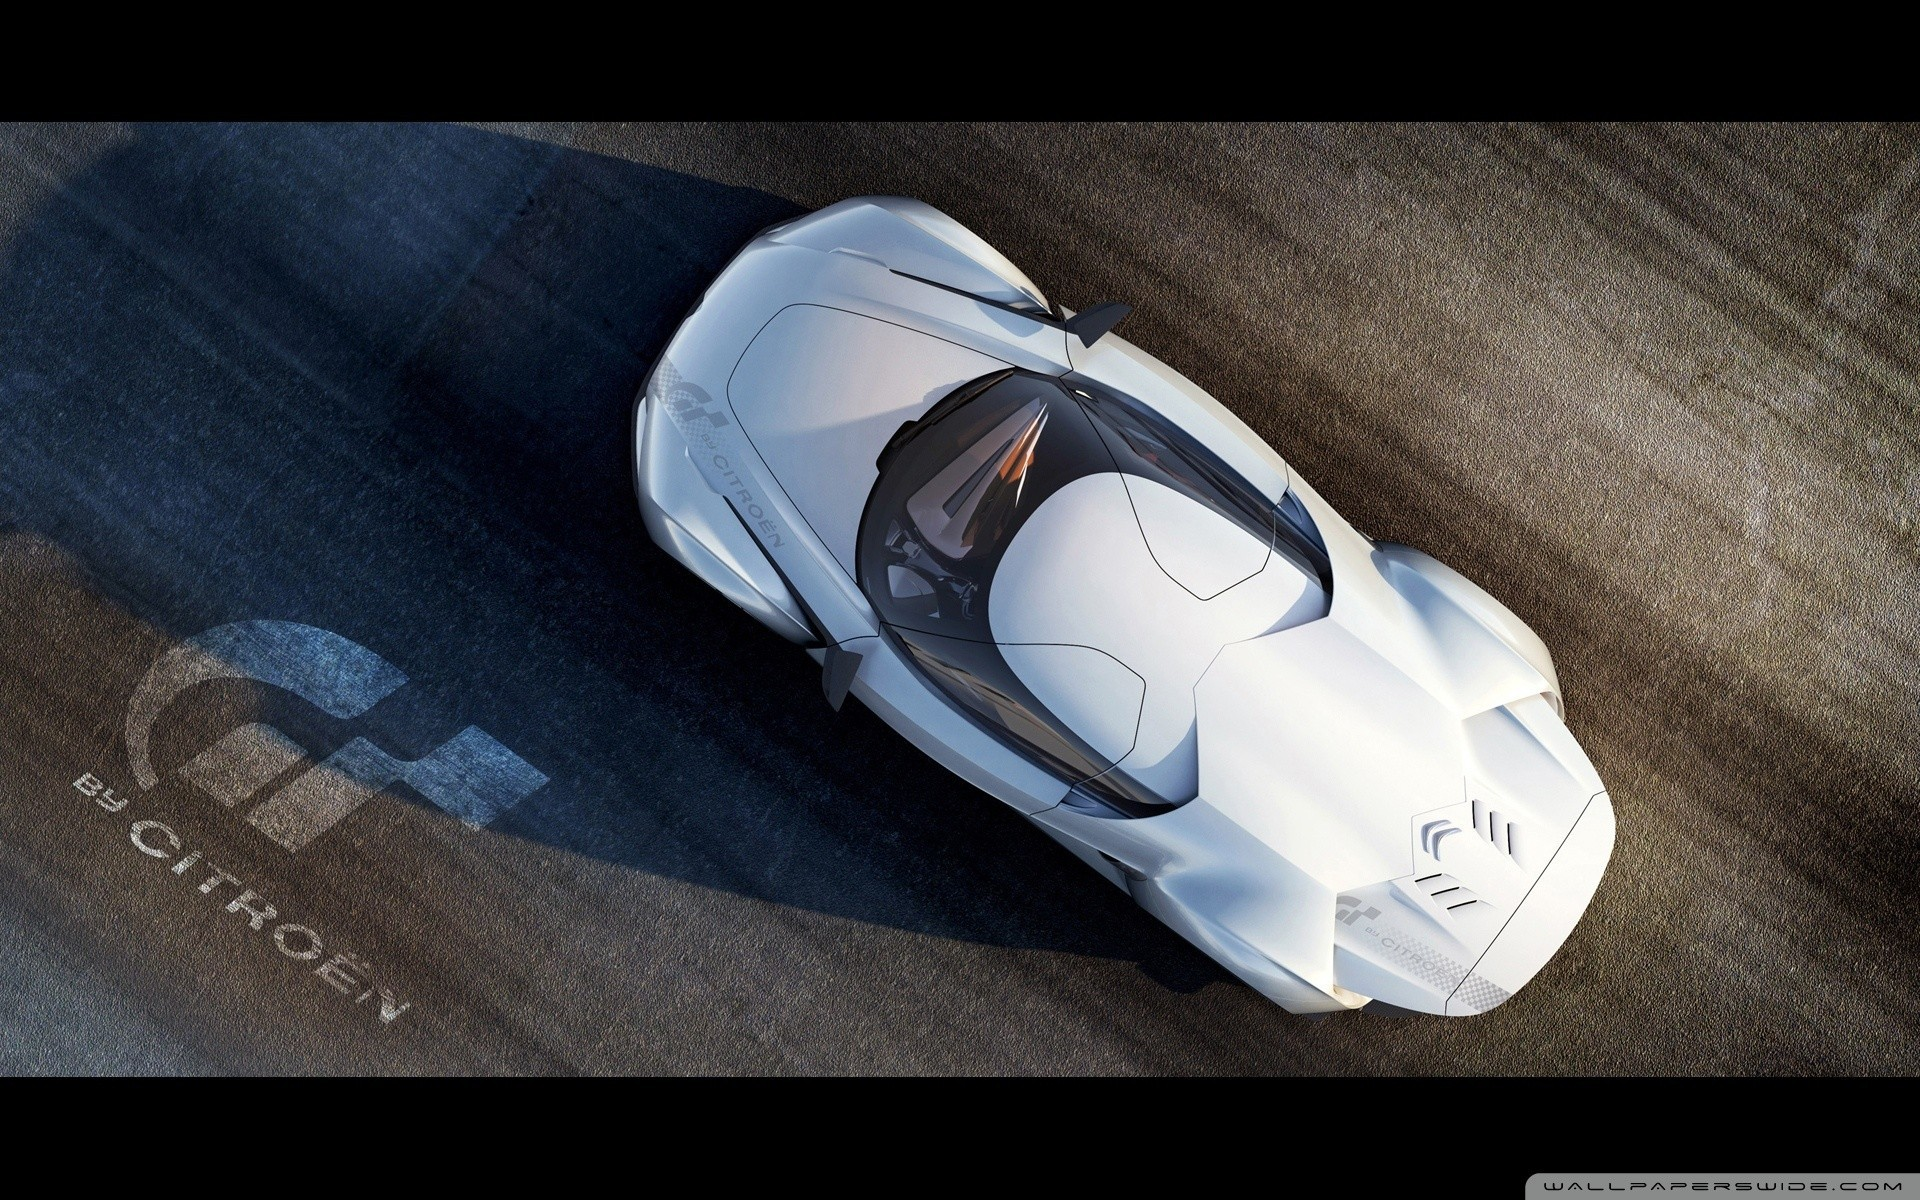 white cars roads concept HD Wallpaper